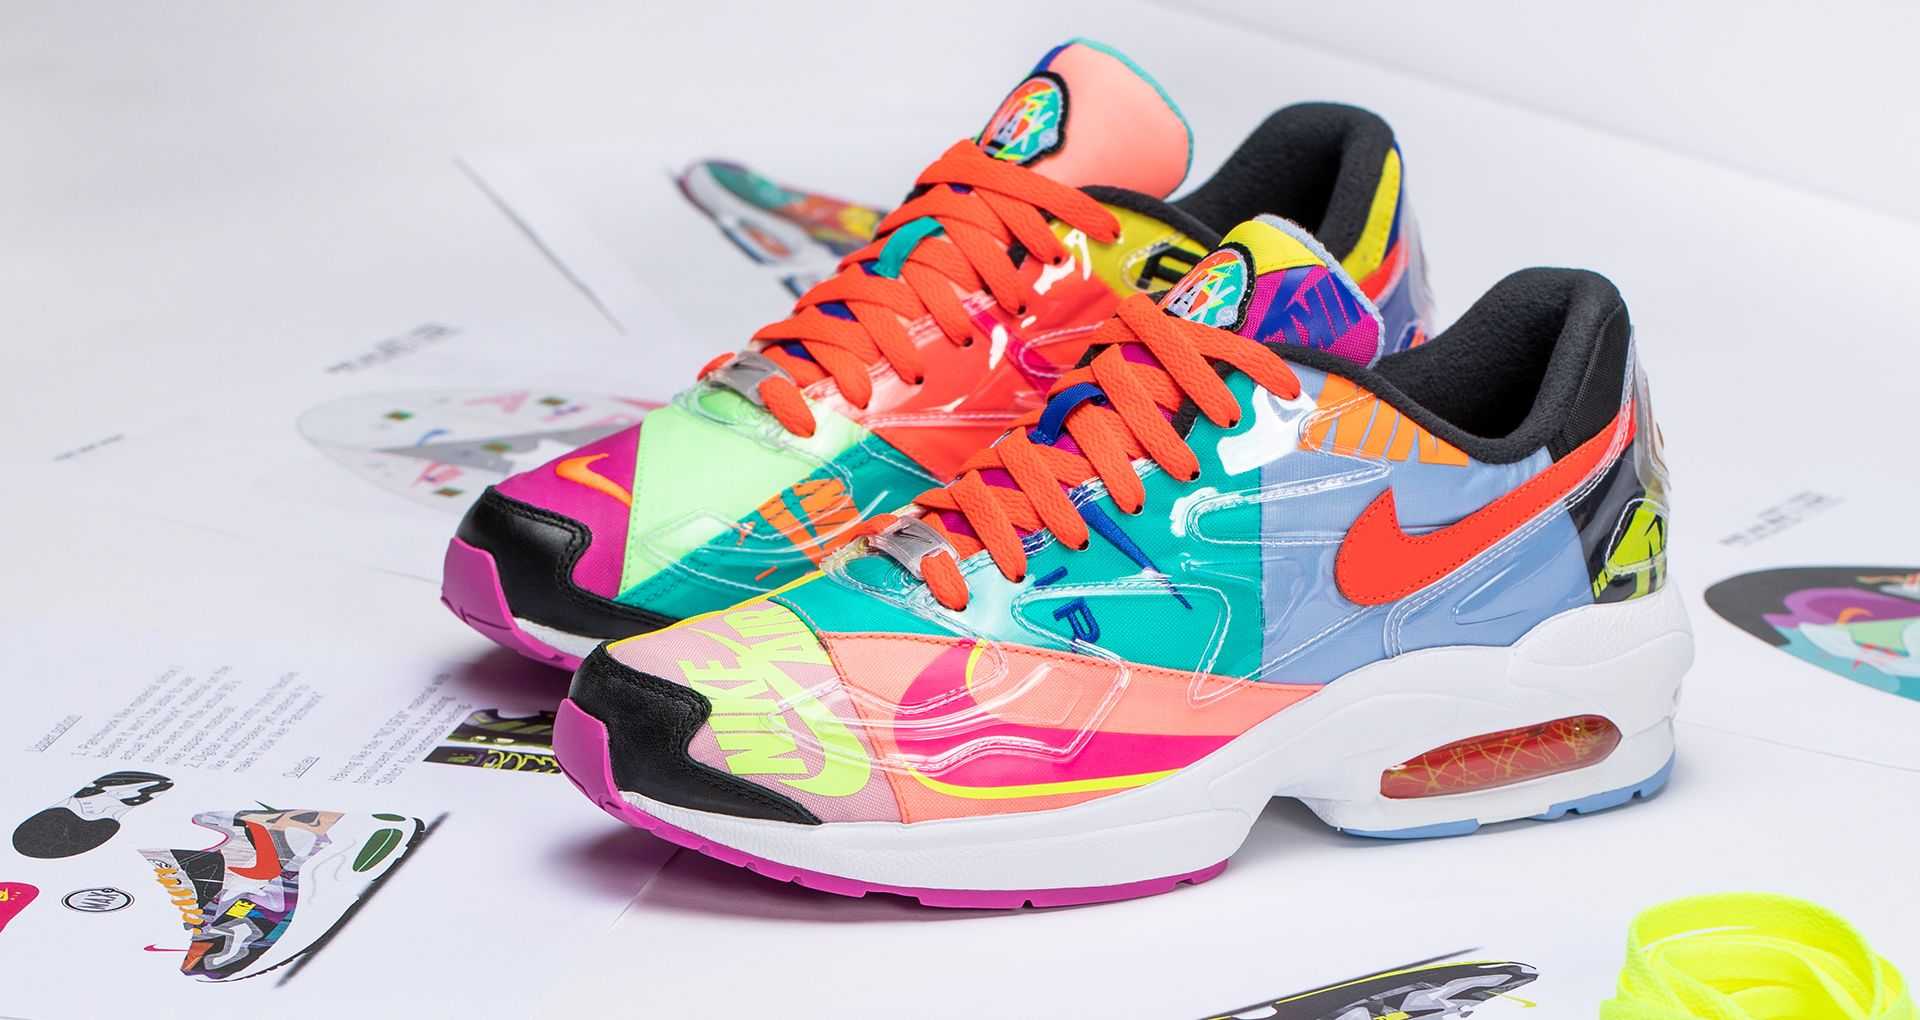 nike x atmos air max2 light